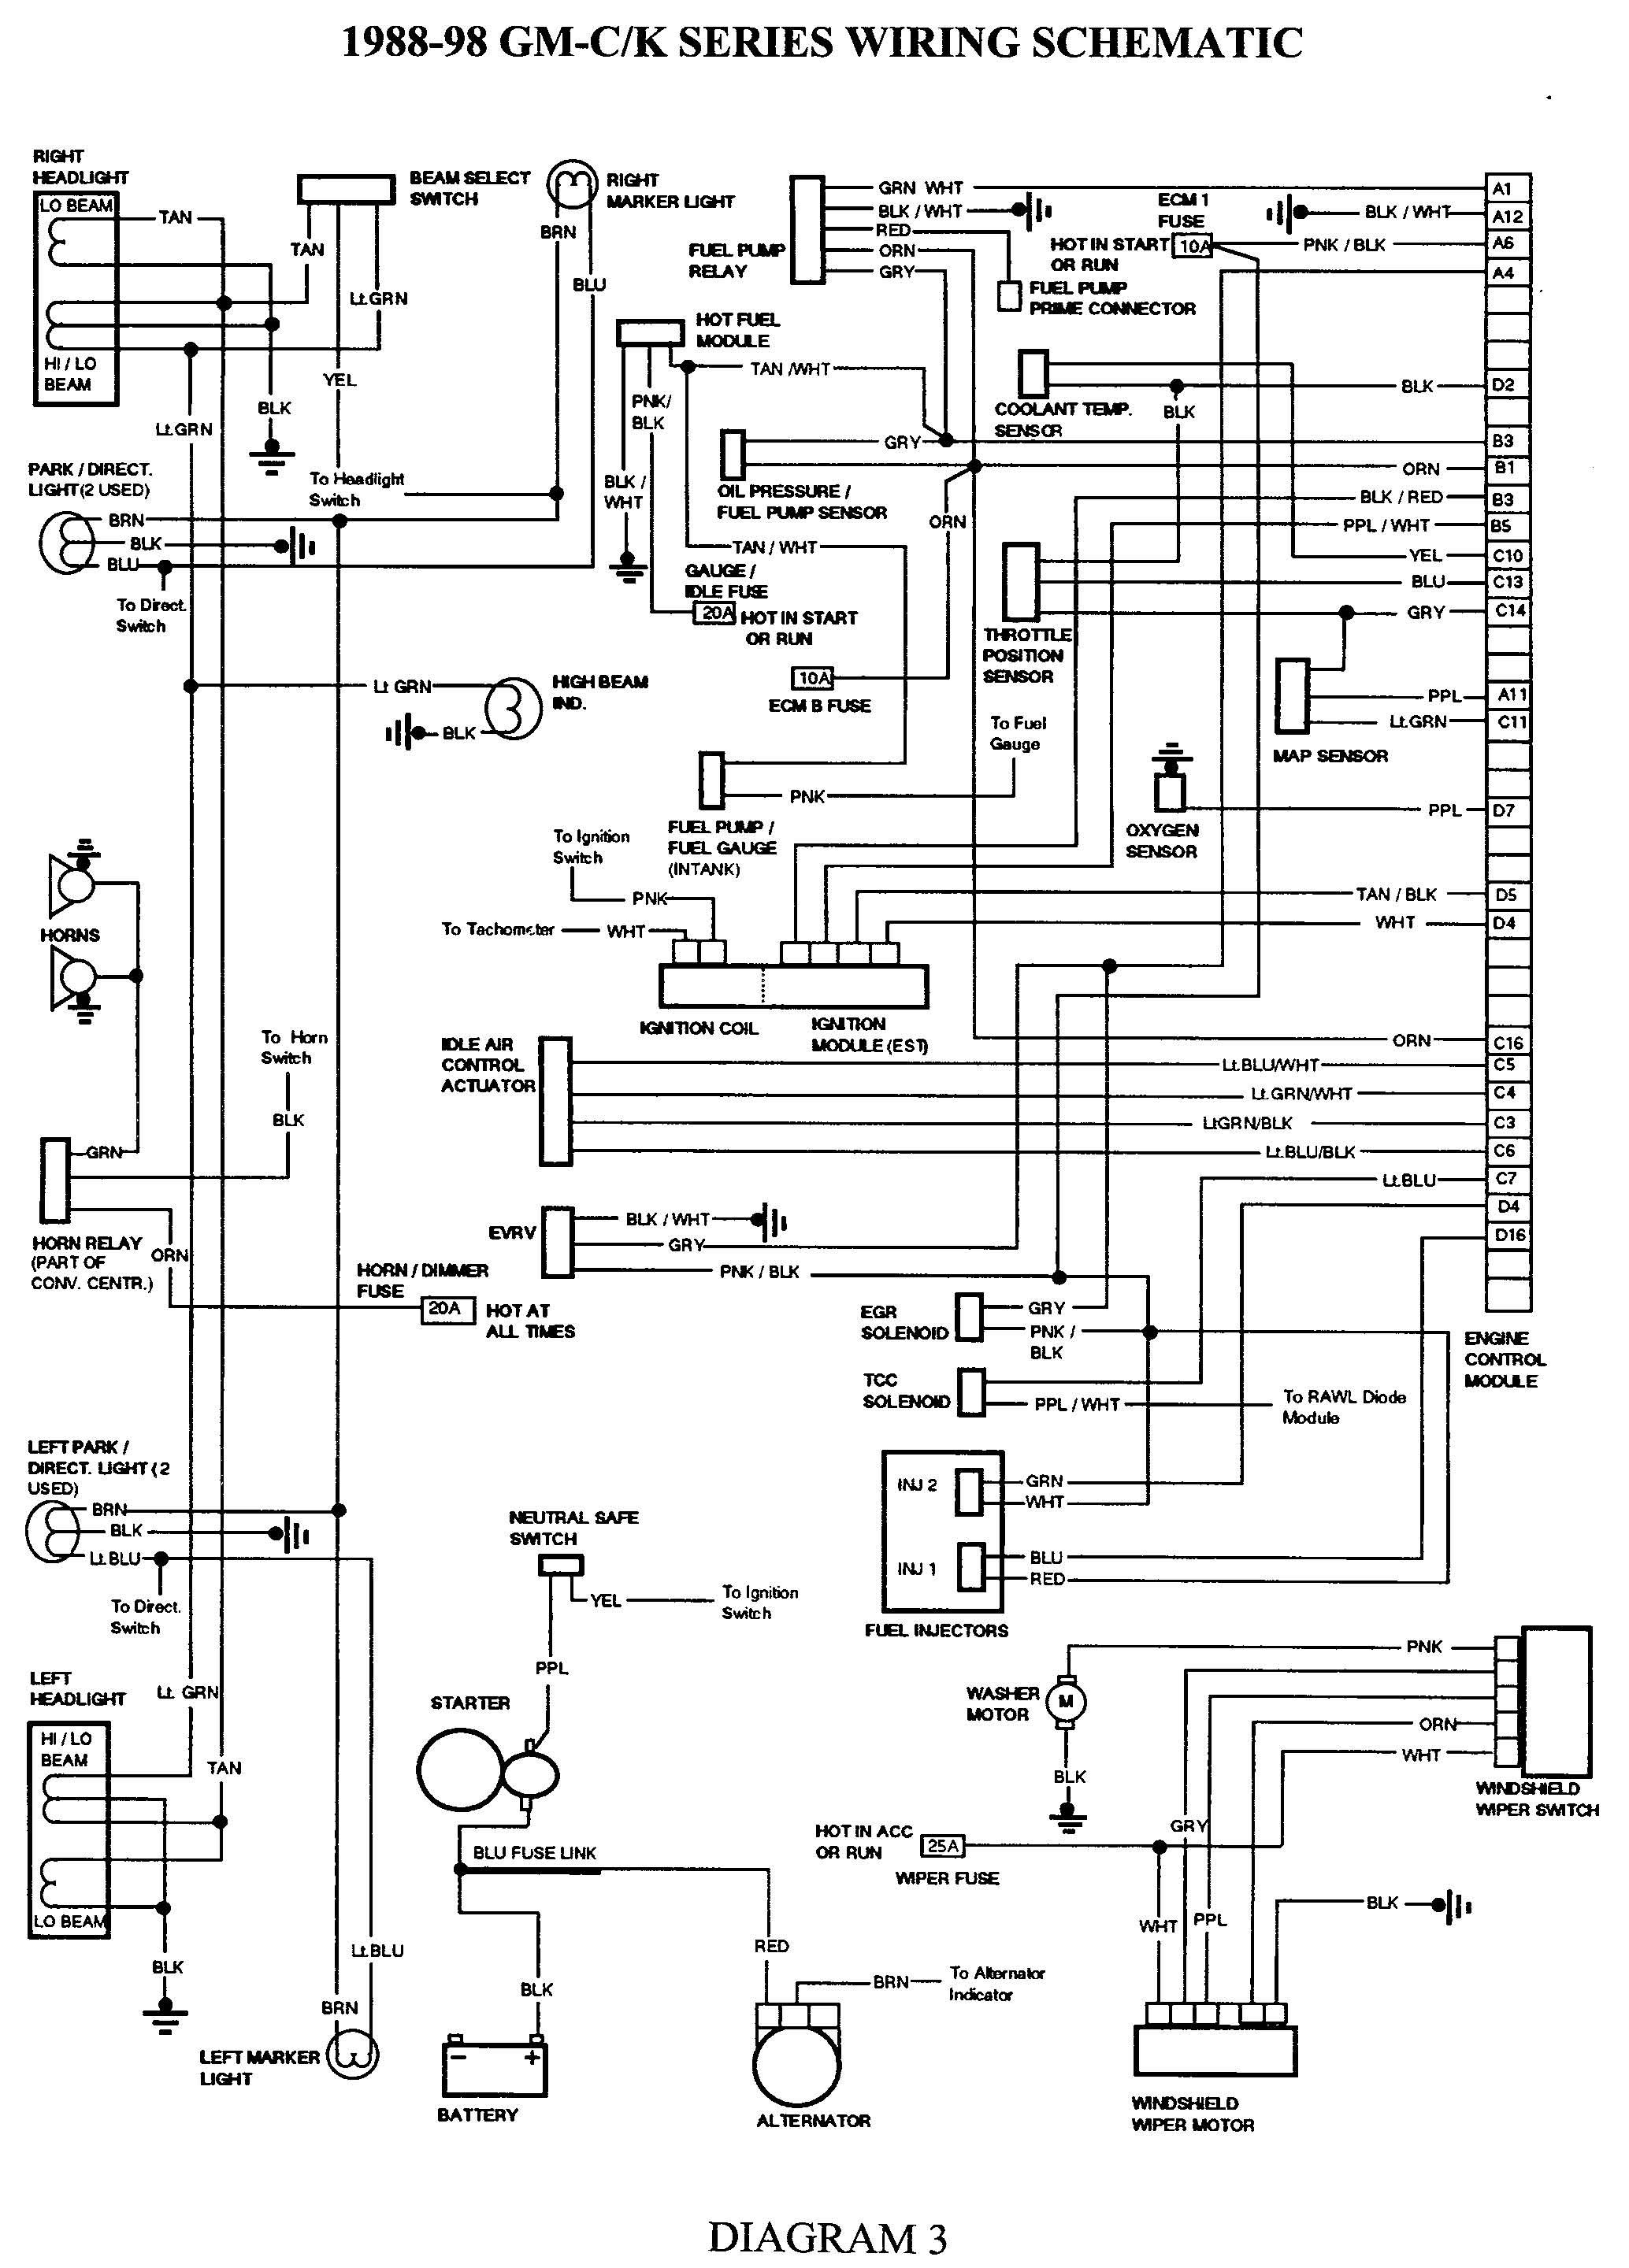 gmc truck wiring diagrams on gm wiring harness diagram 88 98 kc van 2003 chevy silverado alternator wiring chevy s10 fuel pump wiring [ 2068 x 2880 Pixel ]